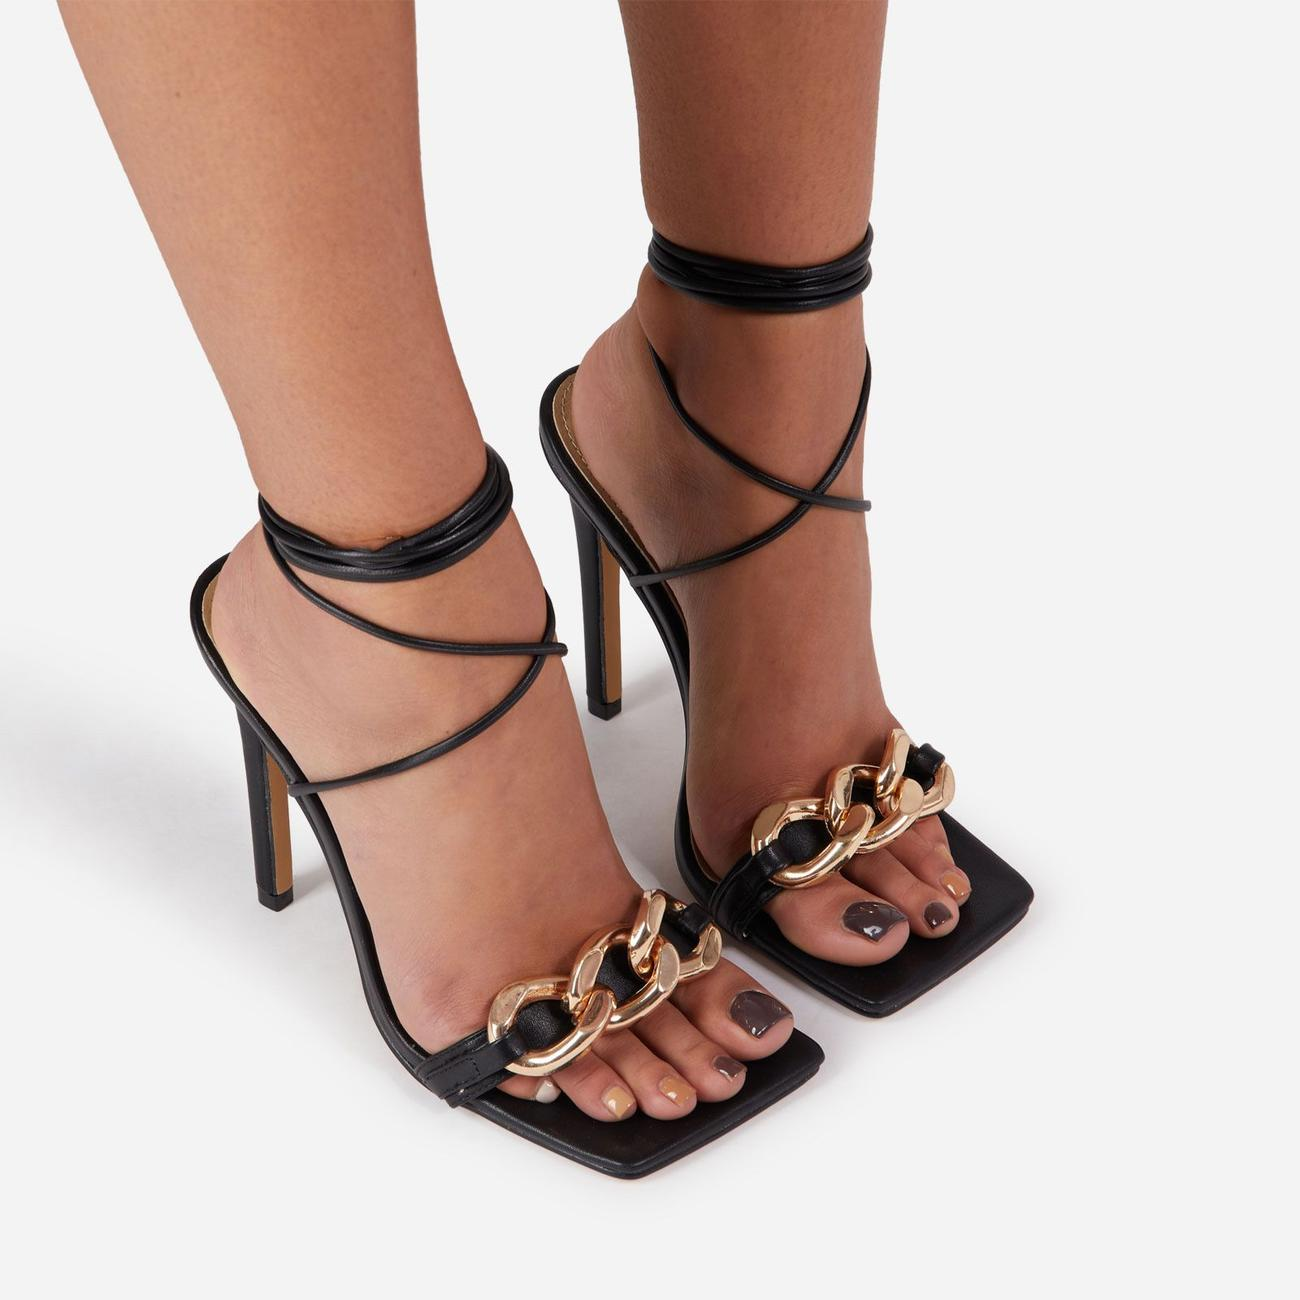 Ring-Leader Chunky Chain Detail Lace Up Square Toe Heel In Black Faux Leather Image 4